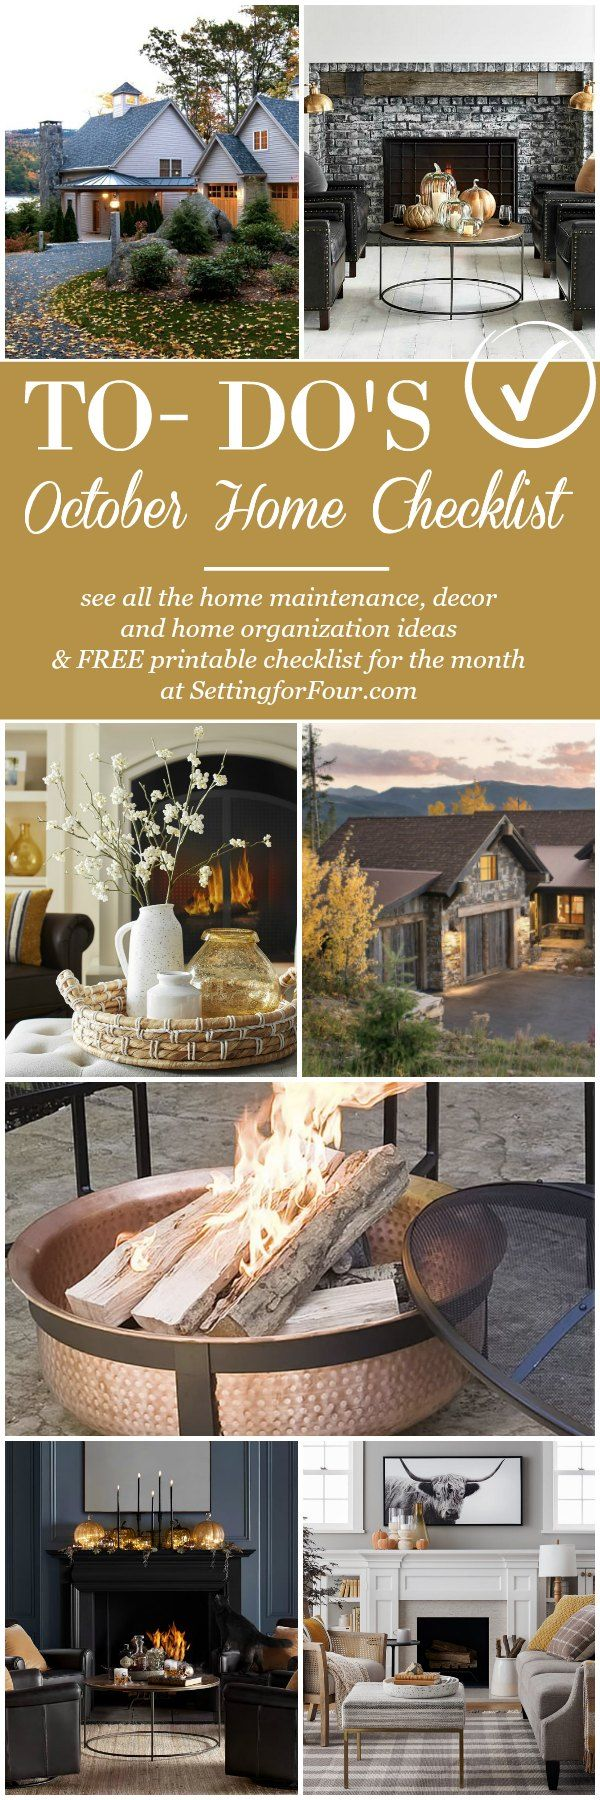 October Home Checklist Home Improvement Fall Home Ideas Autumn Home French Home Decor Home Improvement Projects